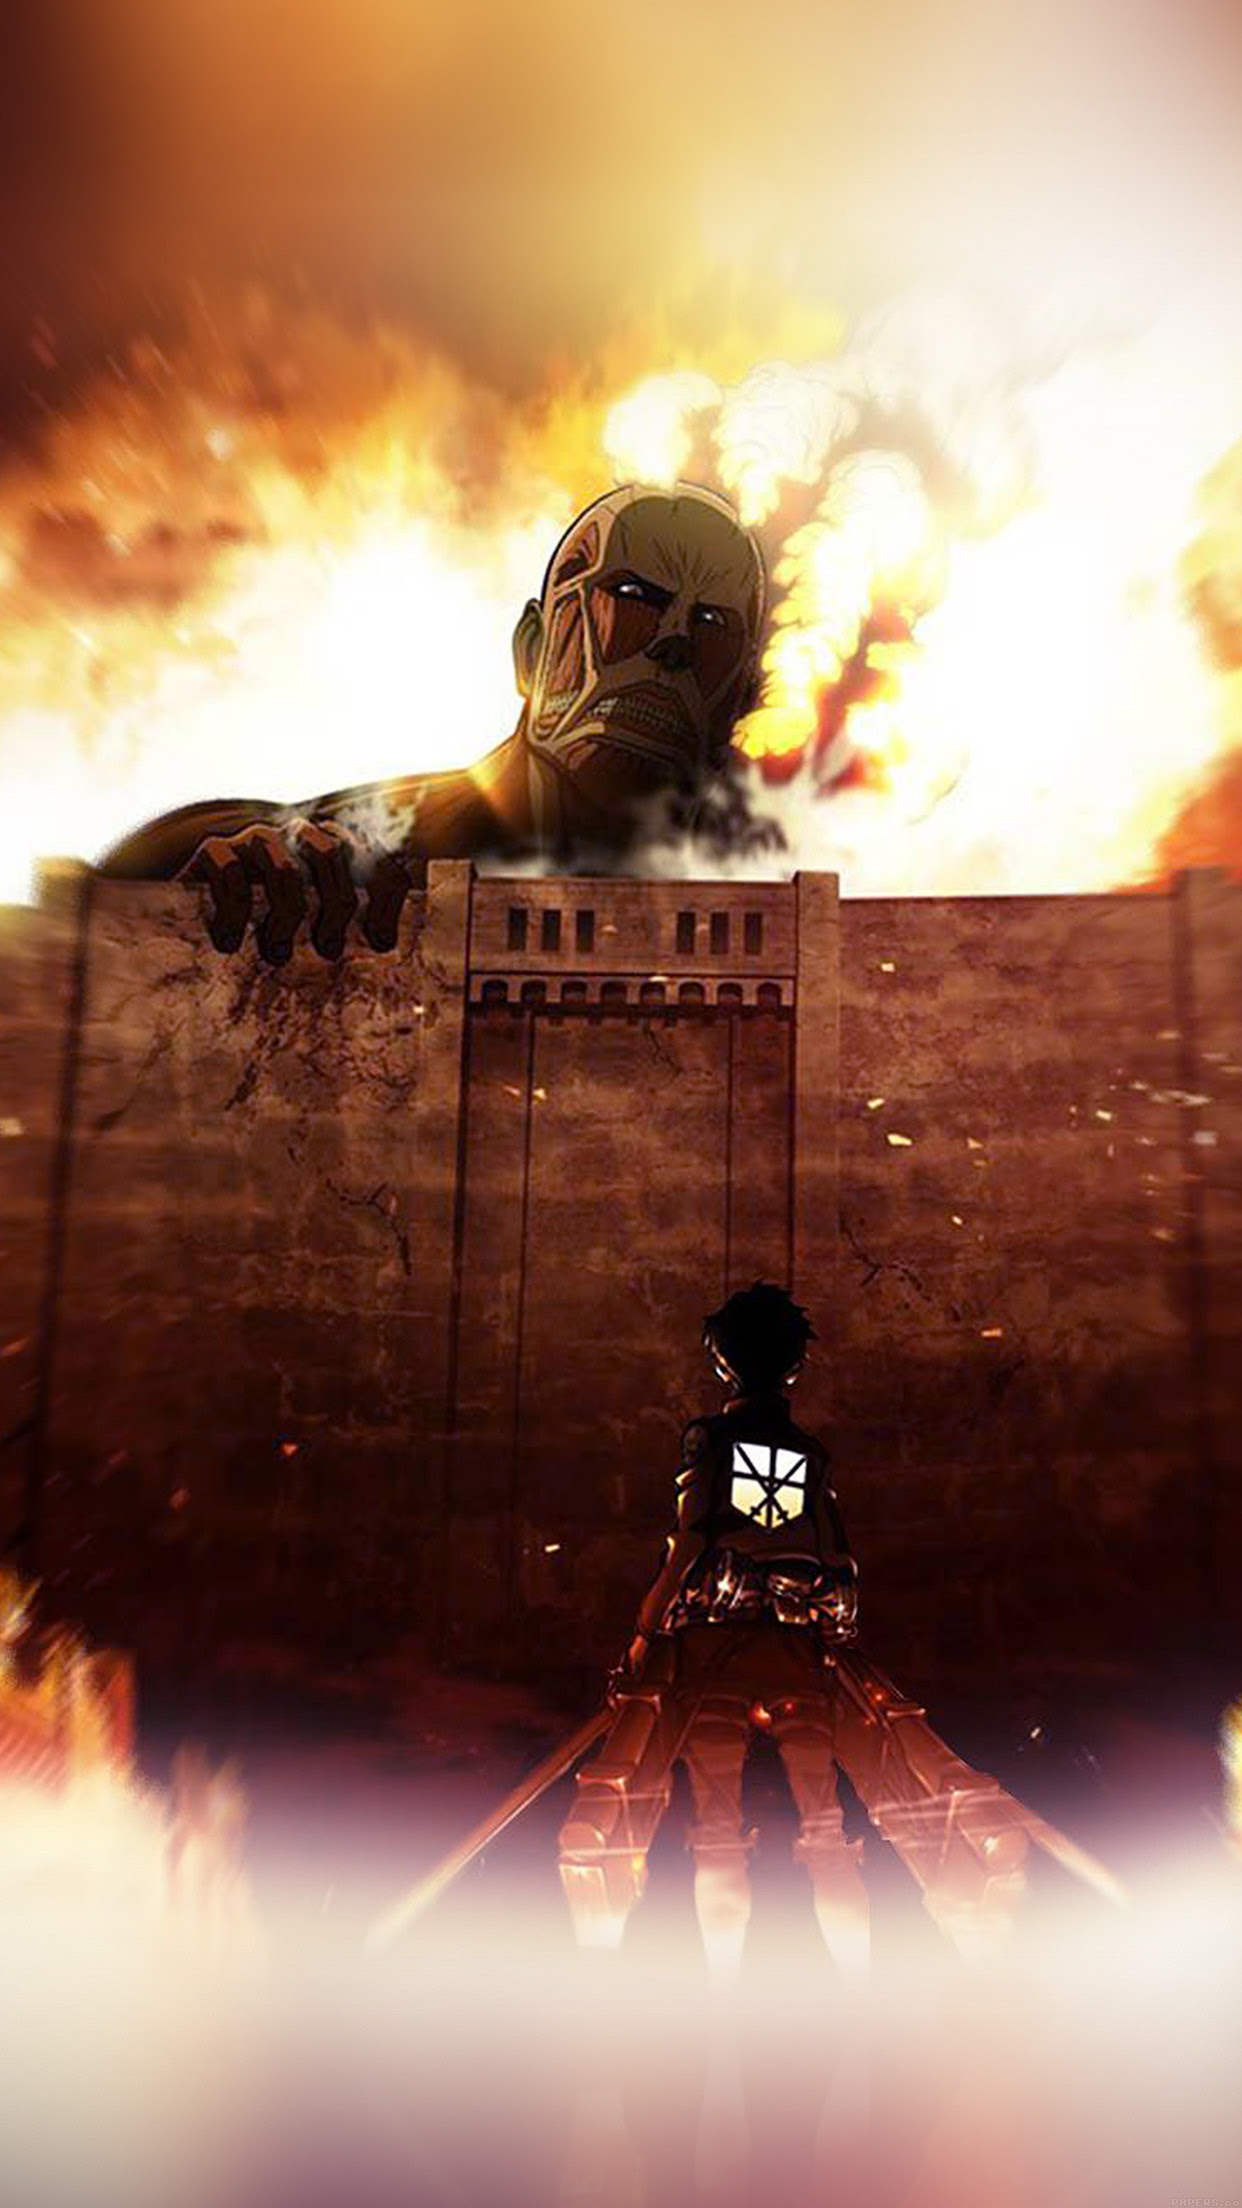 Iphone Anime Wallpaper Attack On Titan